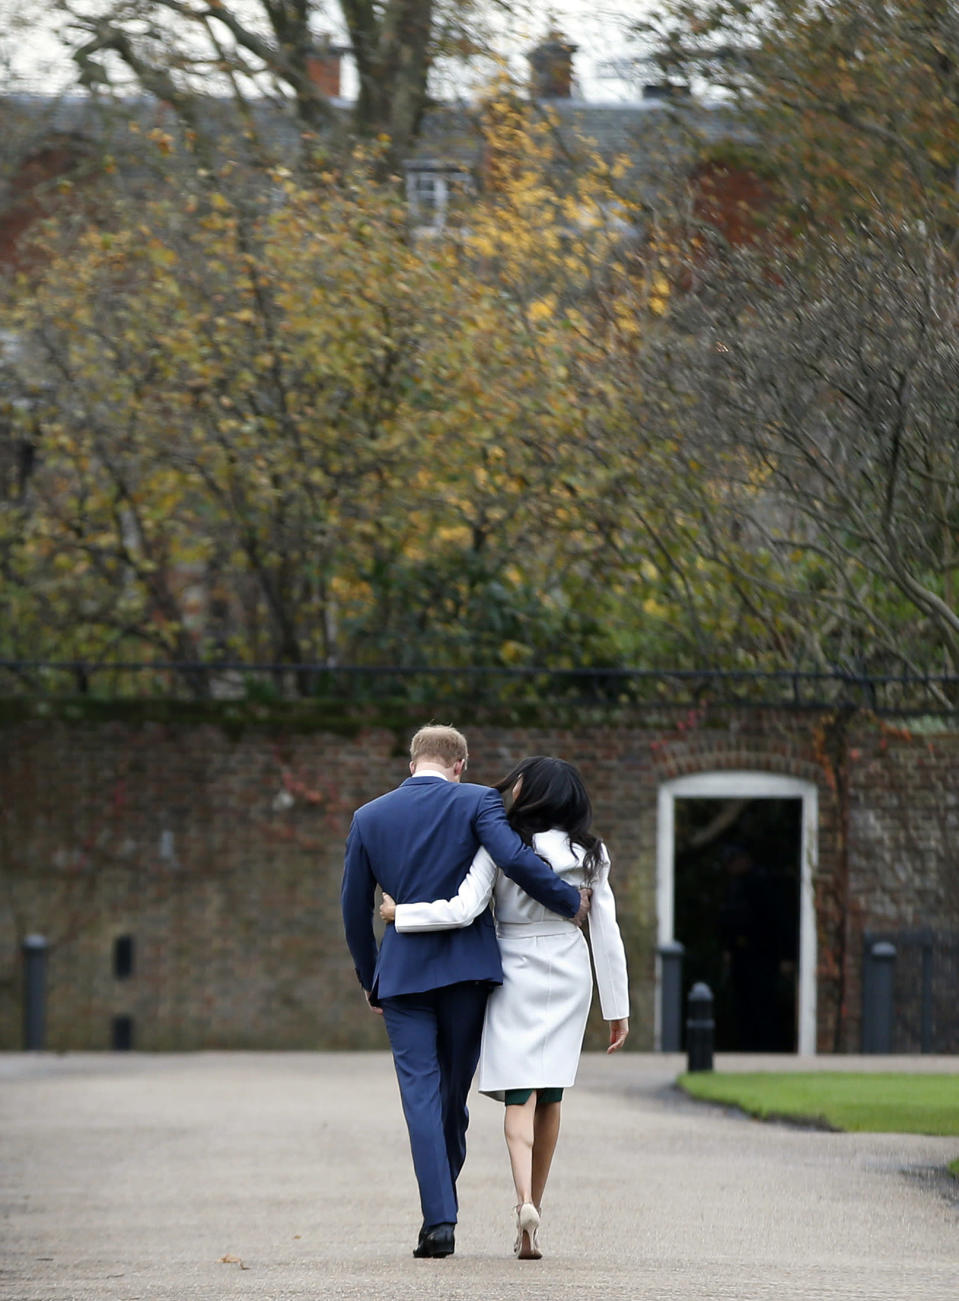 """FILE - In this Monday Nov. 27, 2017 file photo Britain's Prince Harry and Meghan Markle walk away after posing for the media in the grounds of Kensington Palace in London. In a stunning declaration, Britain's Prince Harry and his wife, Meghan, said they are planning """"to step back"""" as senior members of the royal family and """"work to become financially independent."""" A statement issued by the couple Wednesday, Jan. 8, 2020 also said they intend to """"balance"""" their time between the U.K. and North America. (AP Photo/Alastair Grant, File)"""